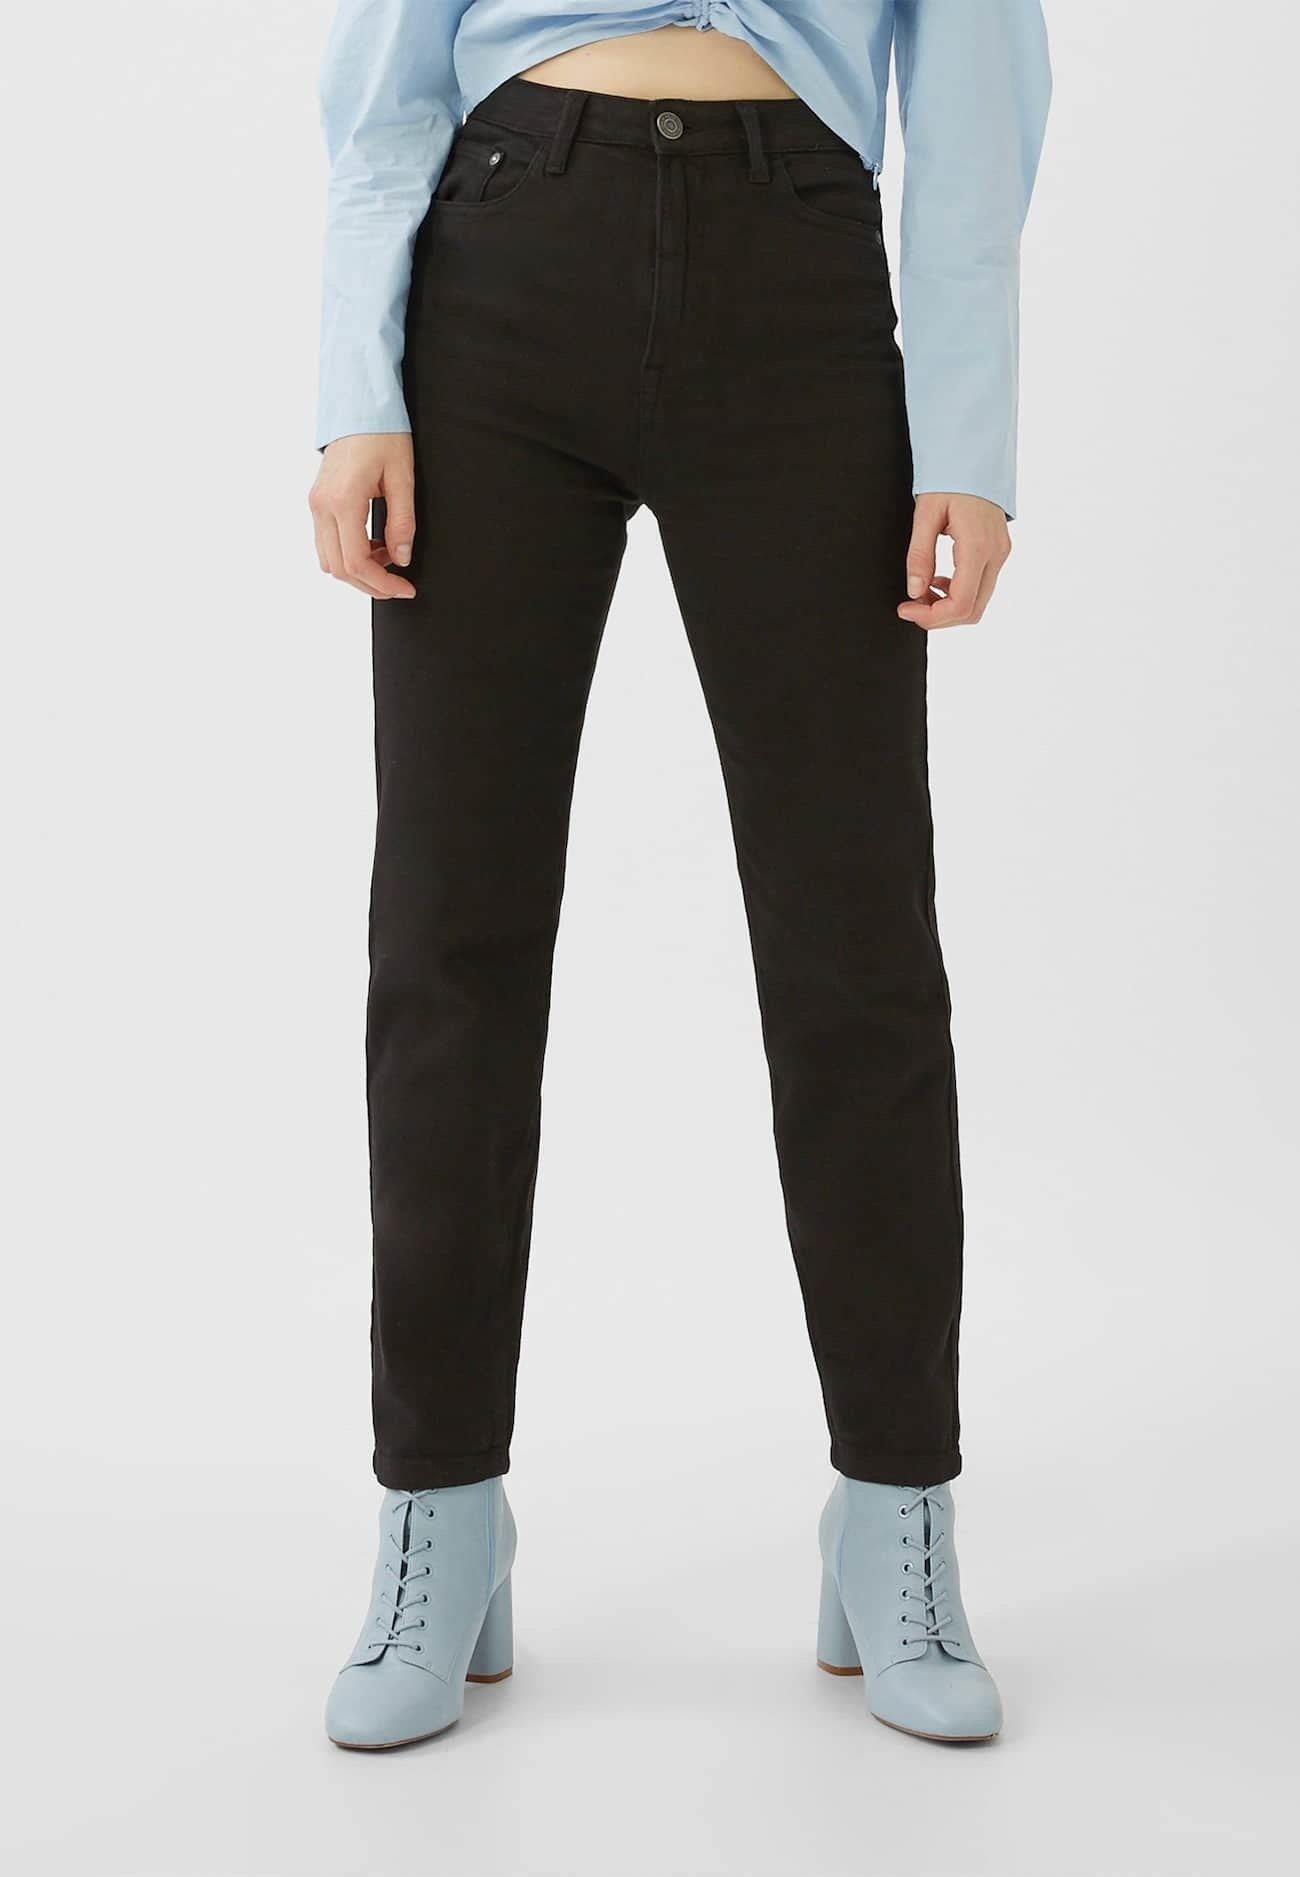 Alle MOM - Jeans Slim Fit